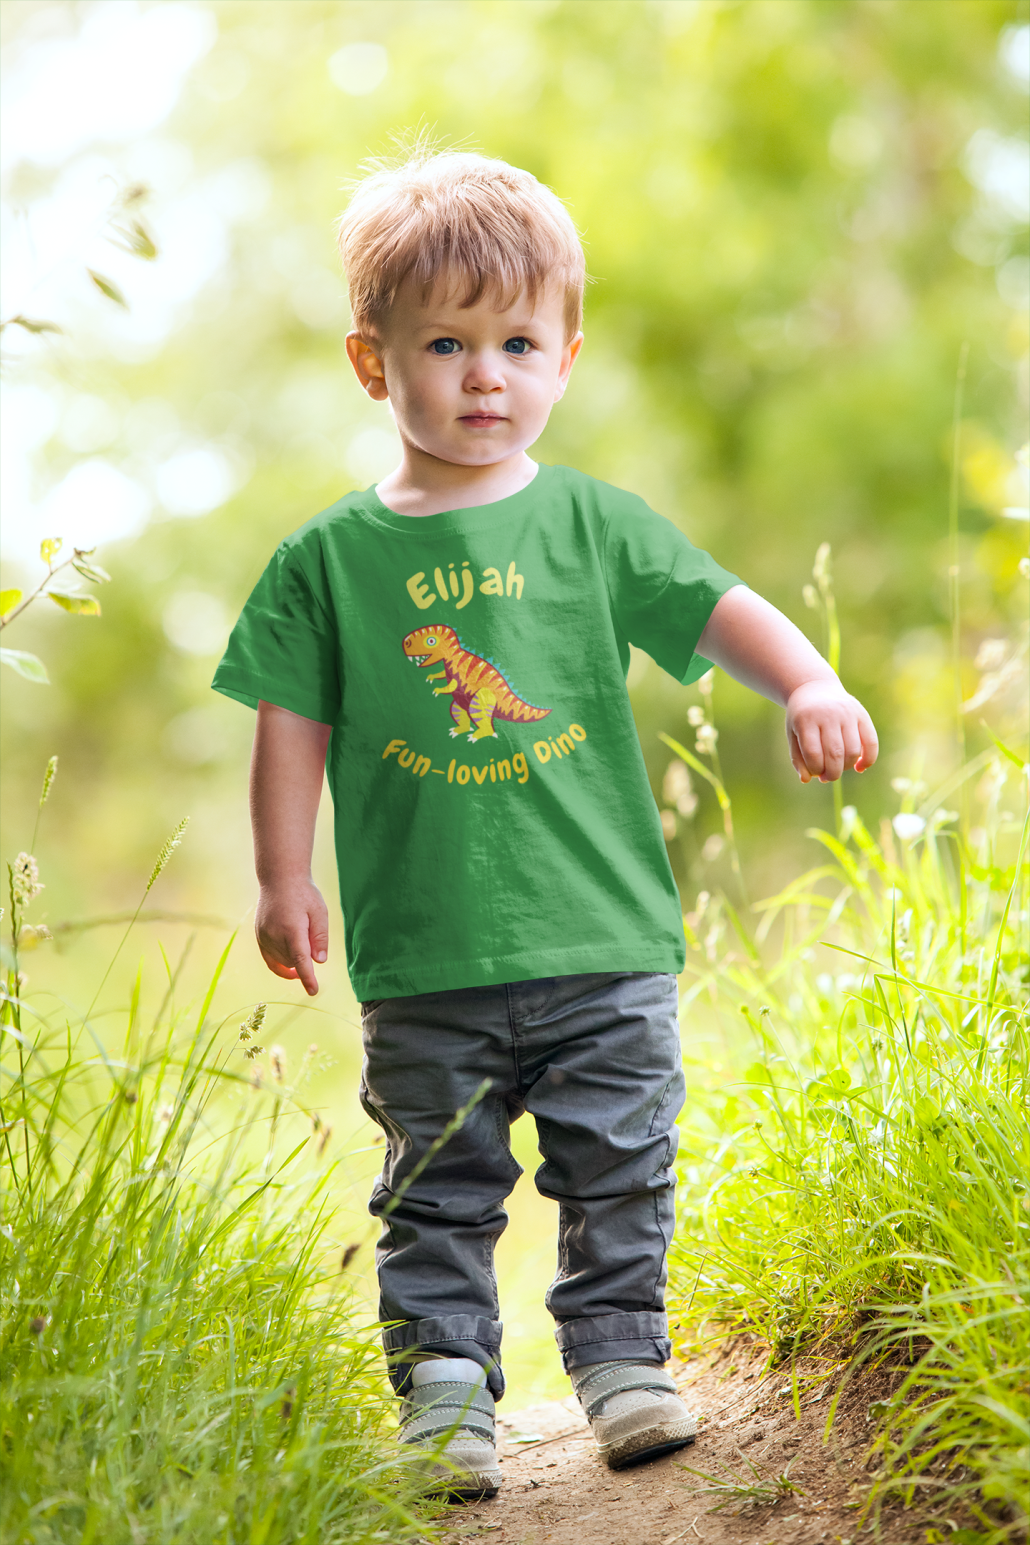 Boy with custom dinosaur T-shirt